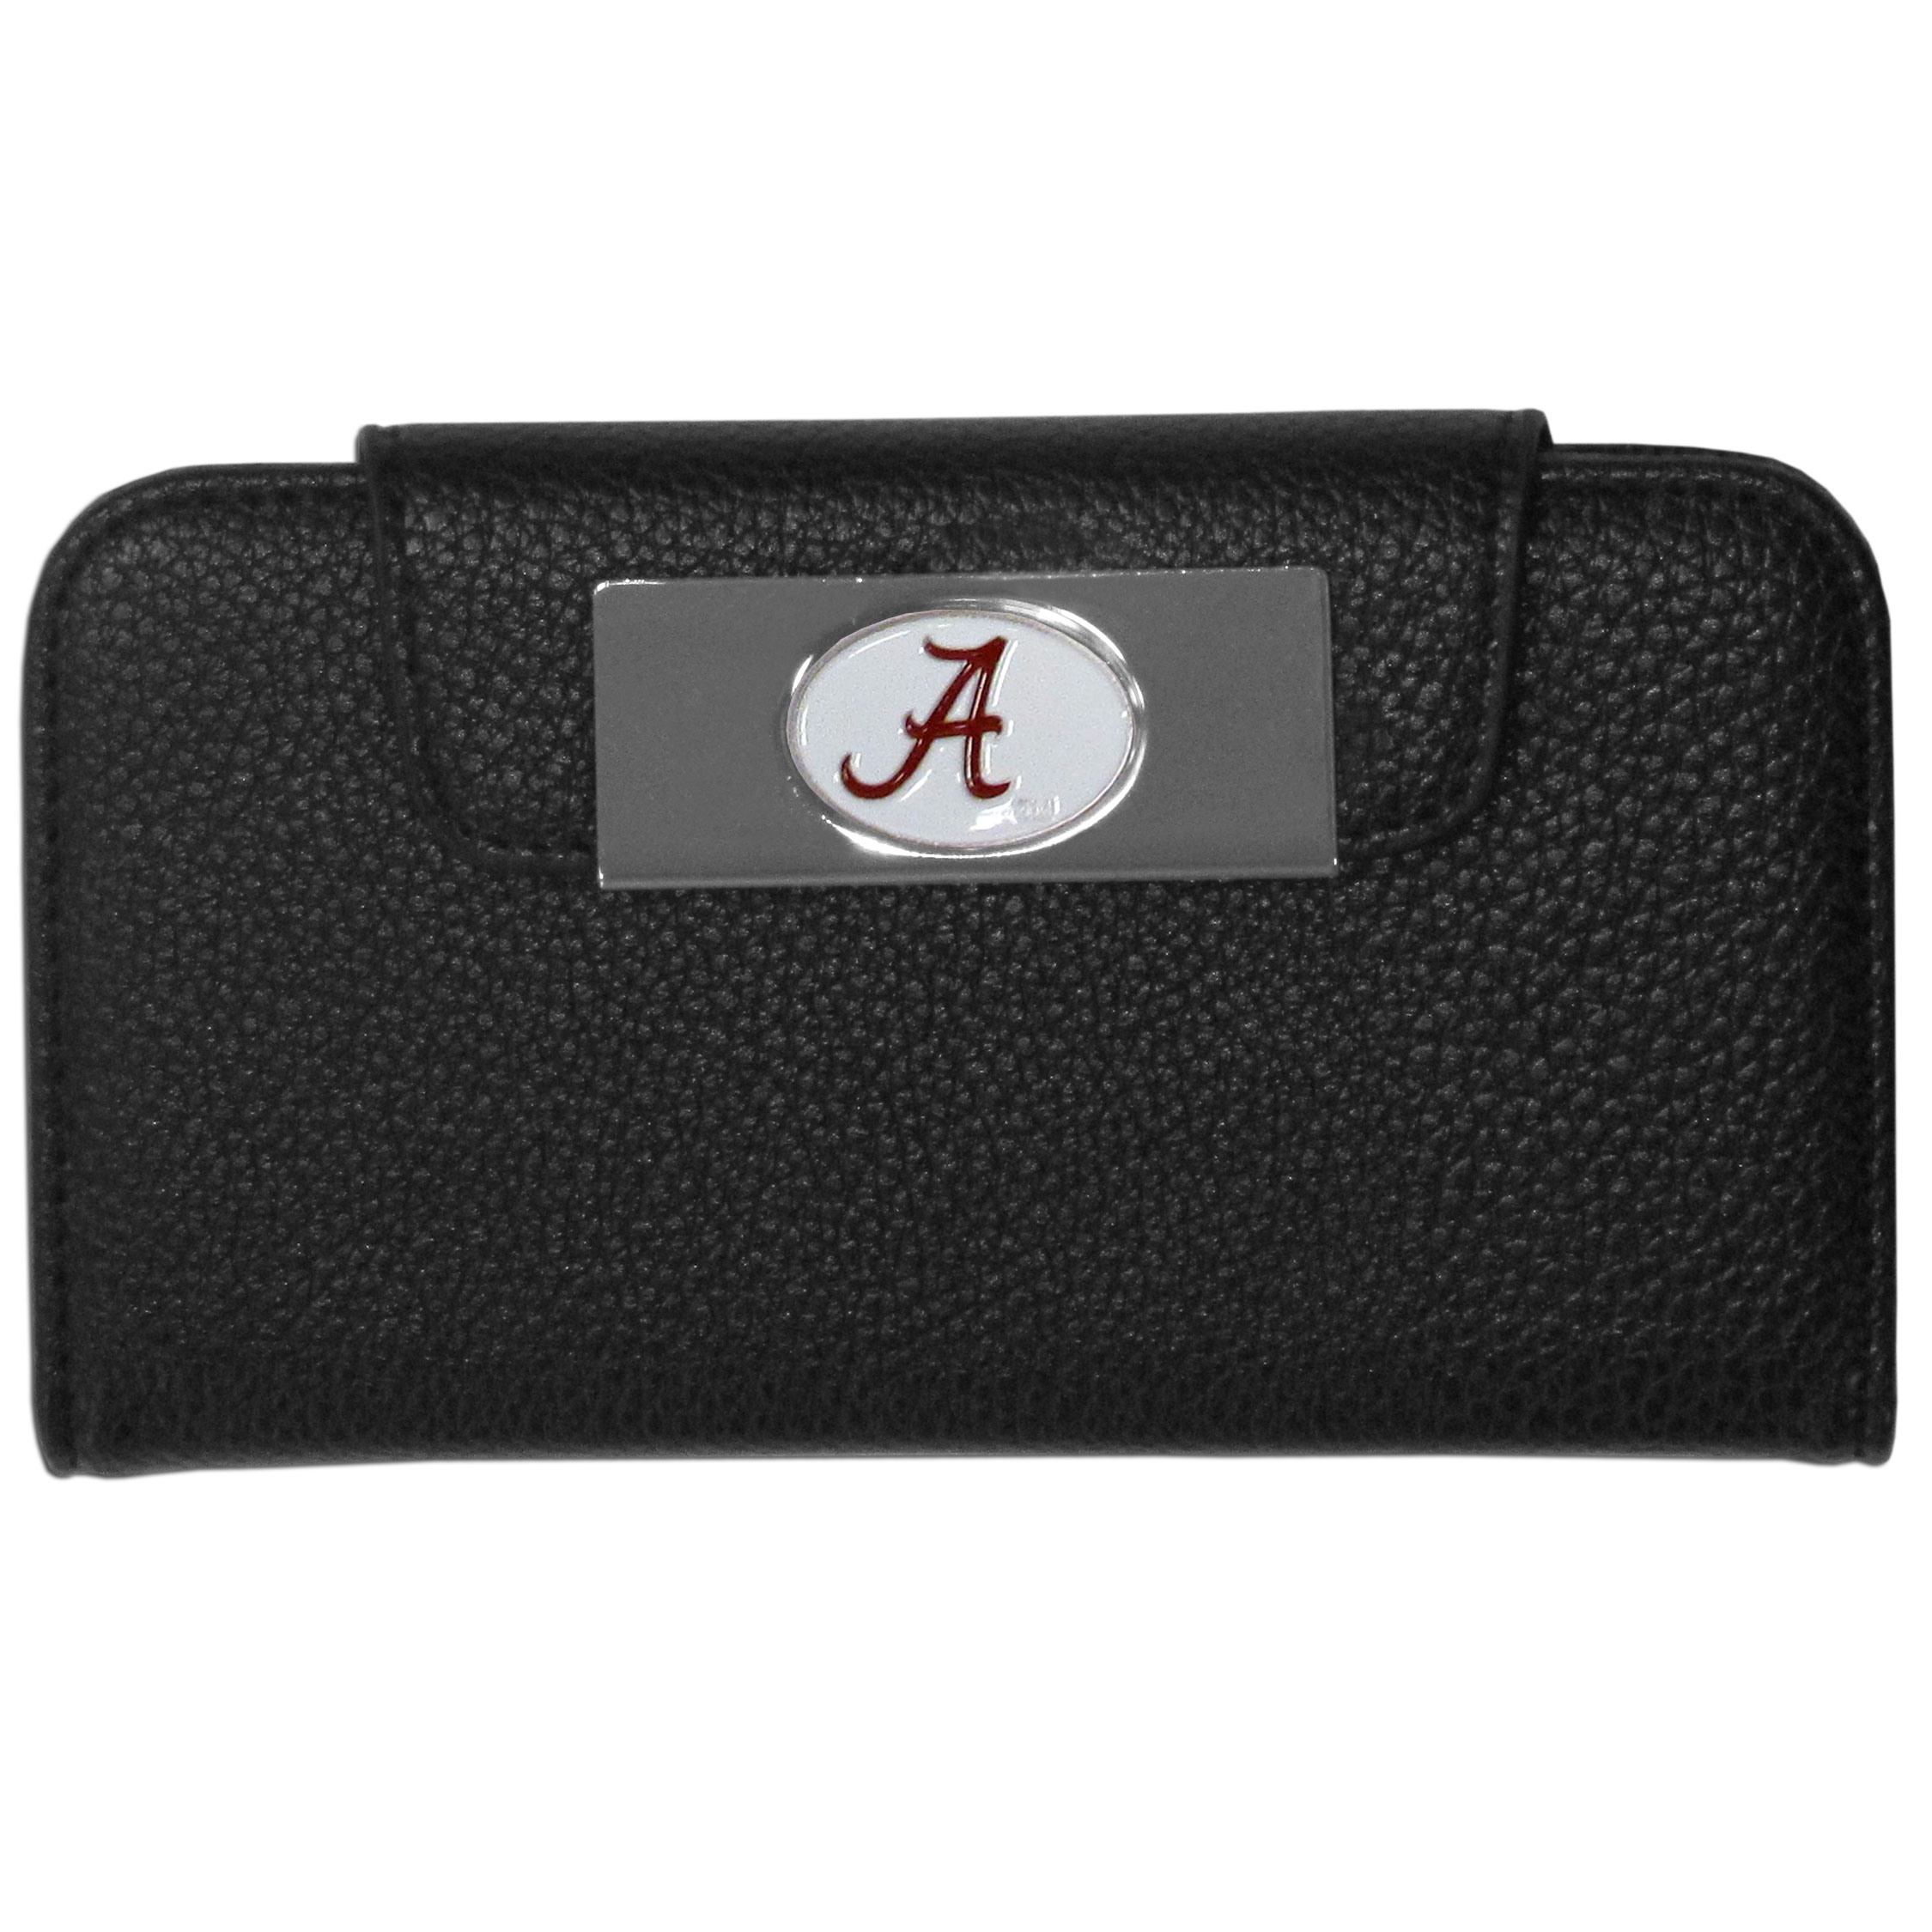 Alabama Crimson Tide iPhone 5/5S Wallet Case - This new & wildly popular case is ideal for those who like to travel light! The stylish case has an inner hard shell that securely holds your phone while allowing complete access to the phone's functionality. The flip cover has slots for credit cards, business cards and identification. The magnetic flip cover has a metal Alabama Crimson Tide emblem on a high polish chrome backing. Fits the iPhone 5/5S